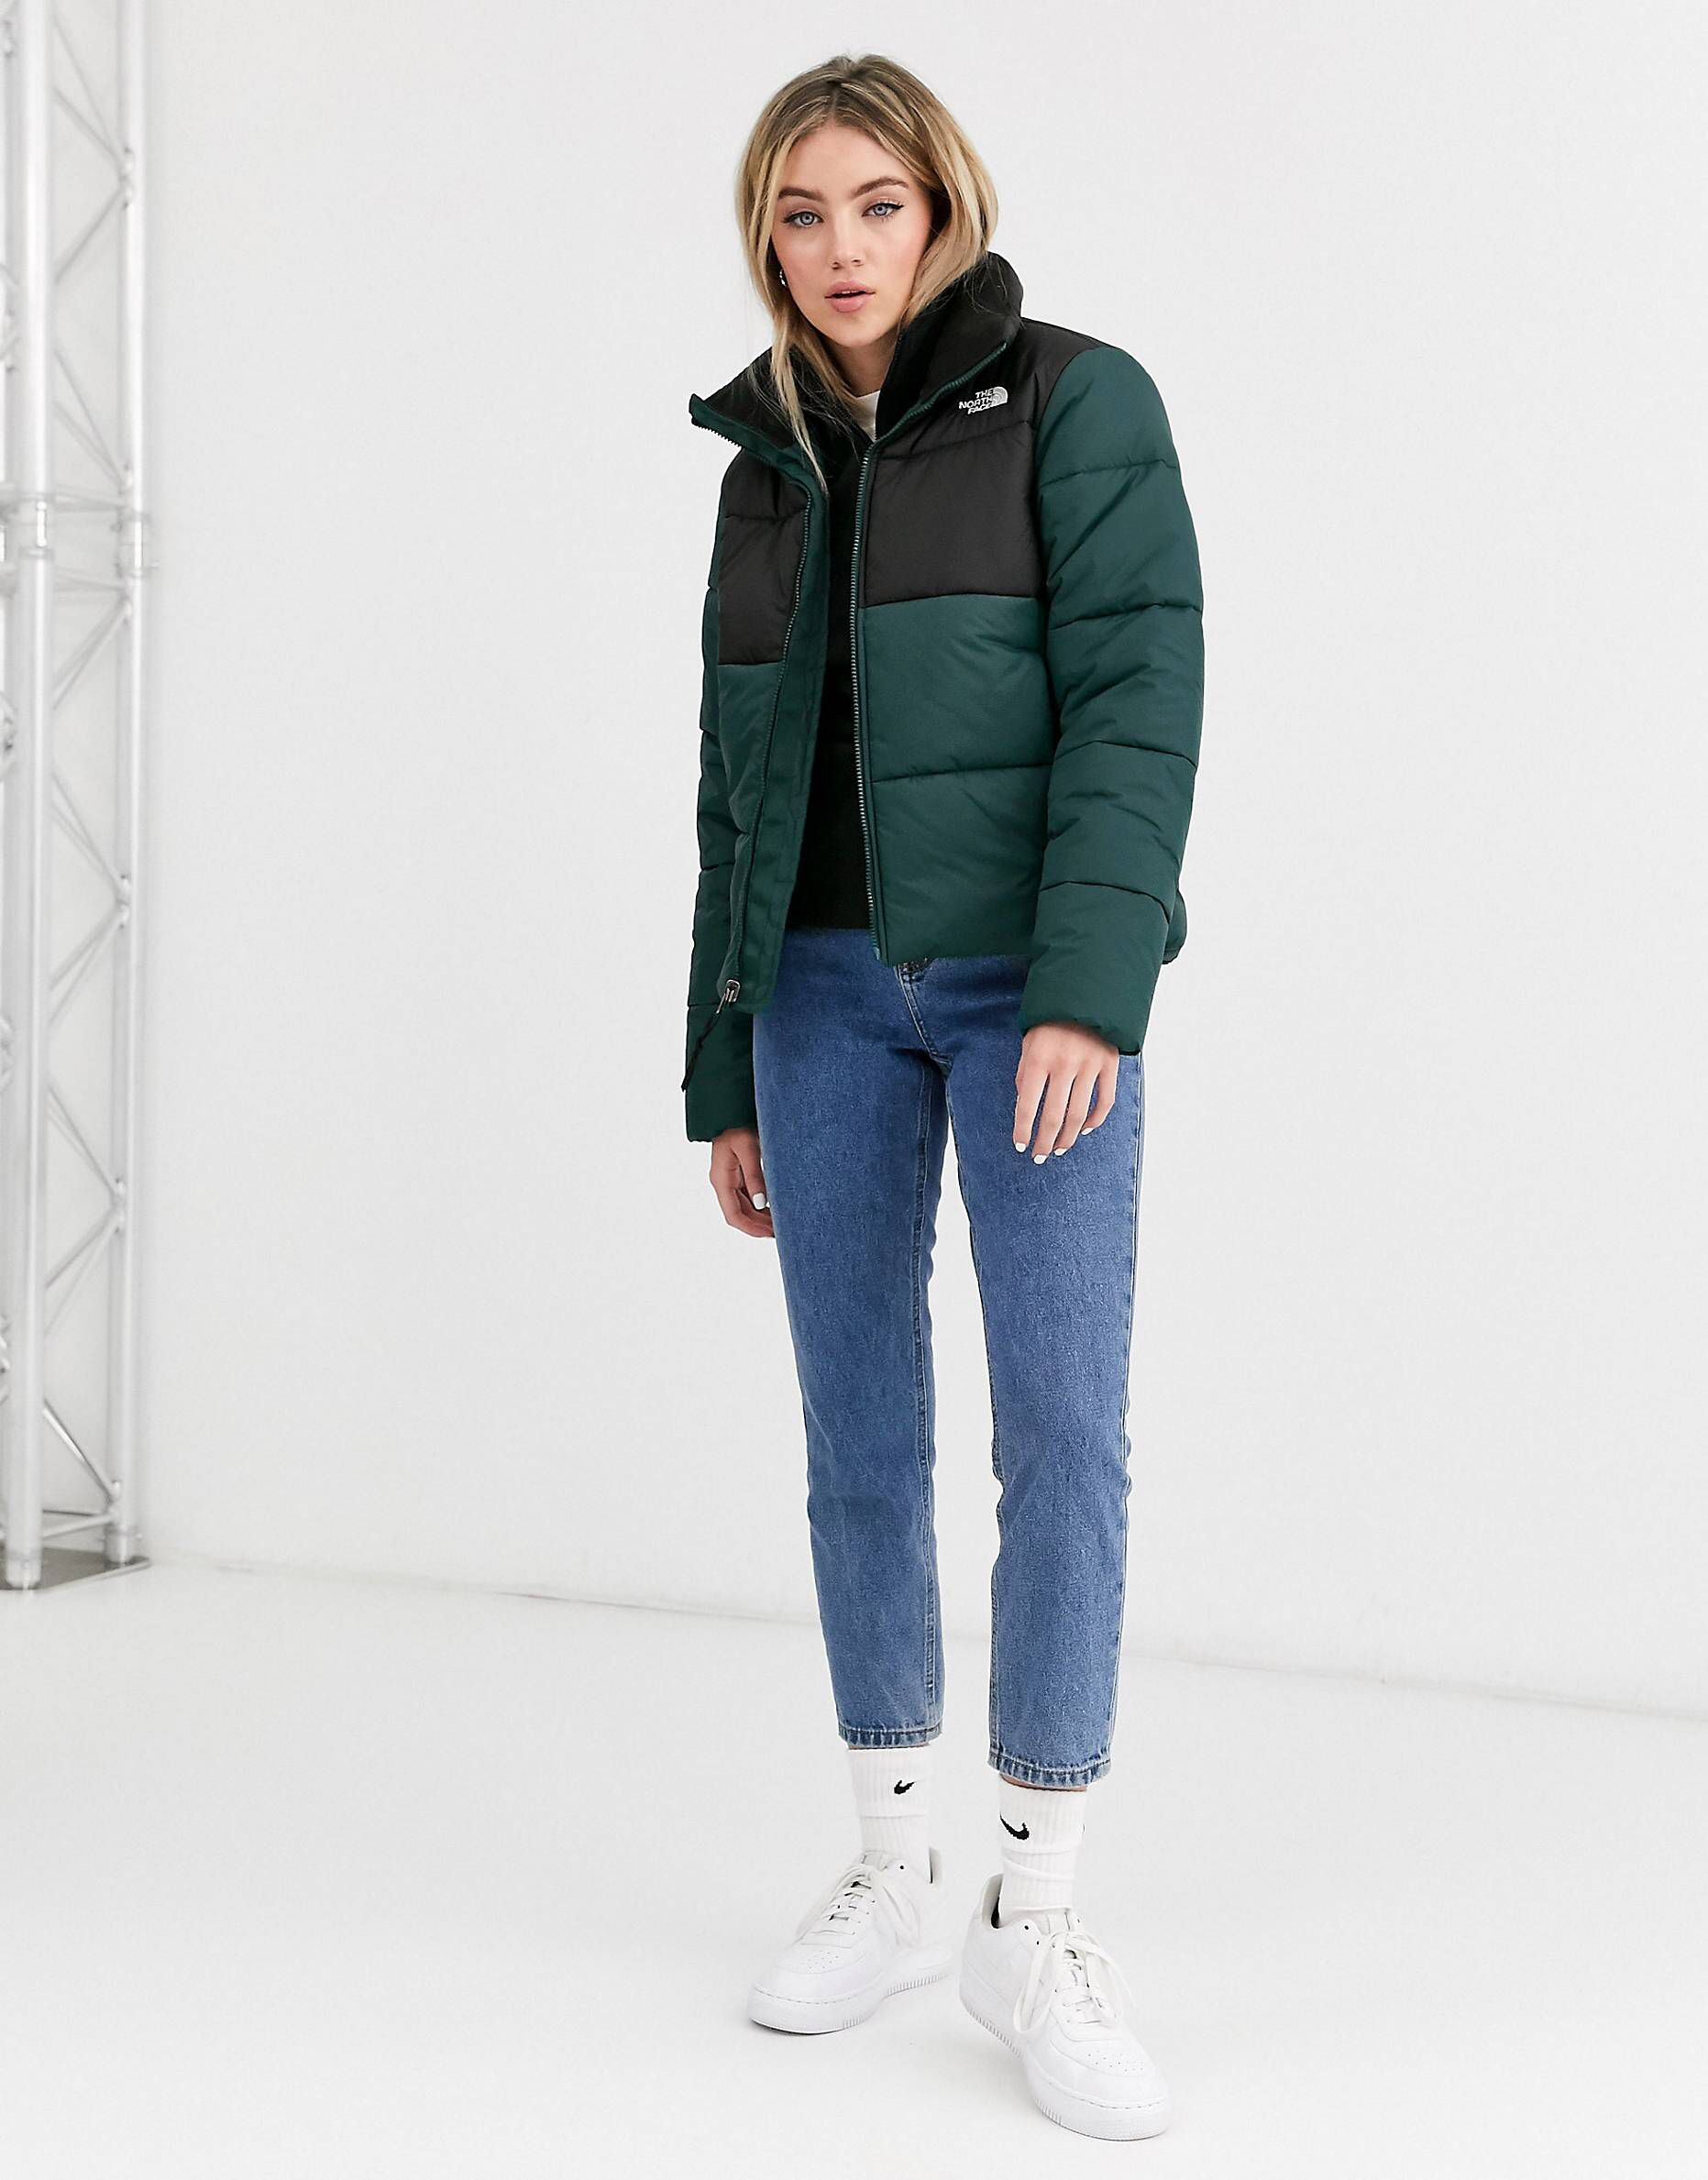 Pin By Charlene Ramos On Outfits North Face Puffer Jacket Green North Face Jacket North Face Outfits [ 2378 x 1863 Pixel ]